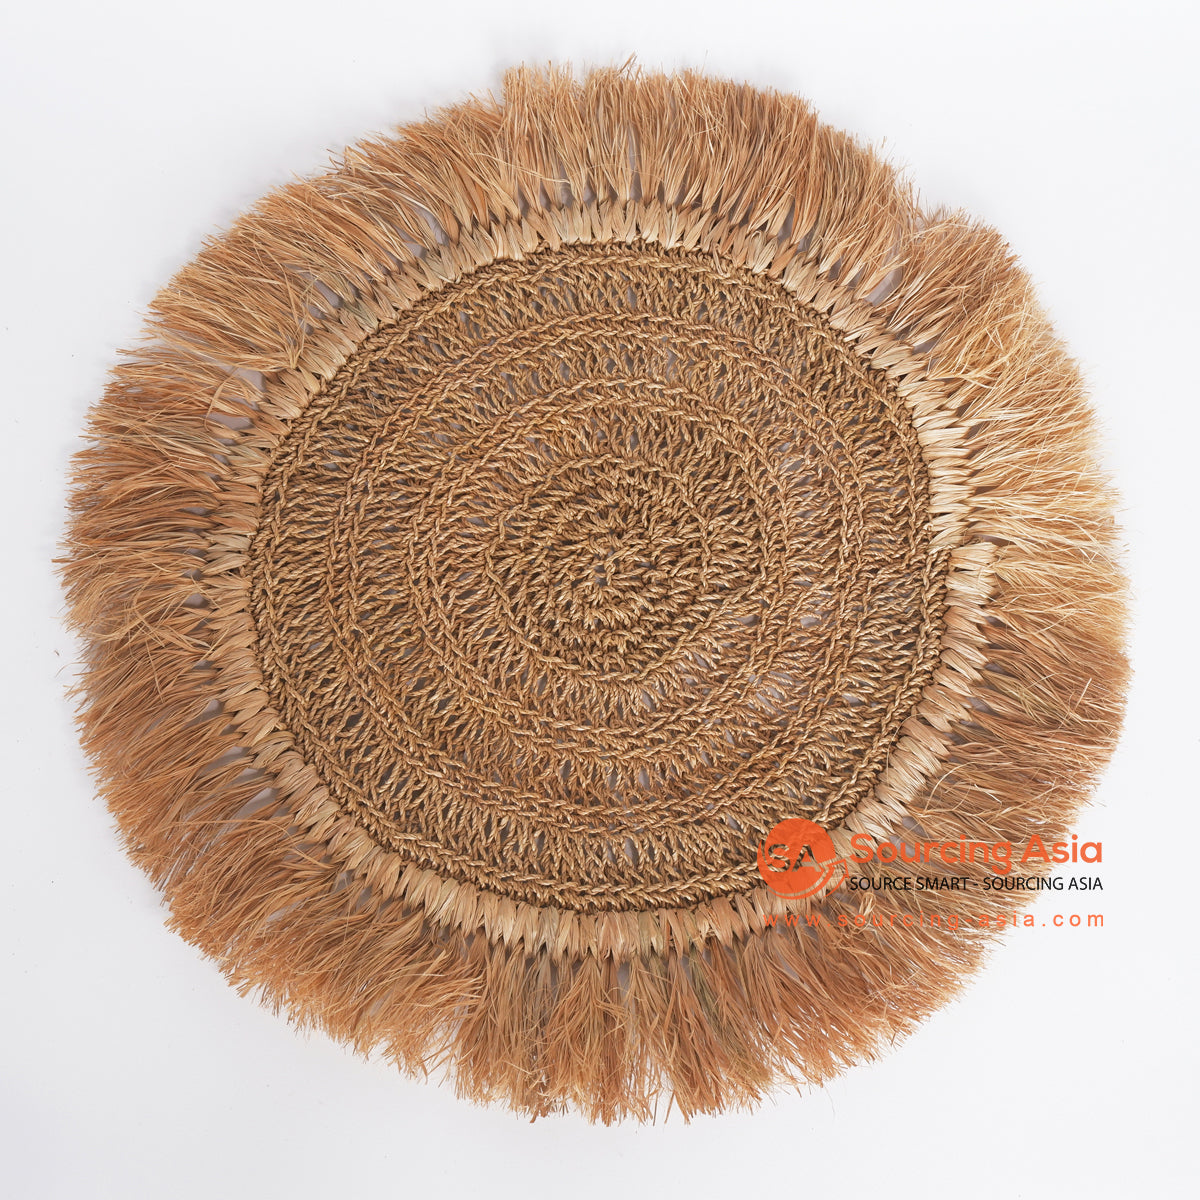 MRC333 NATURAL AGEL AND MENDONG ROUND WALL DECORATION